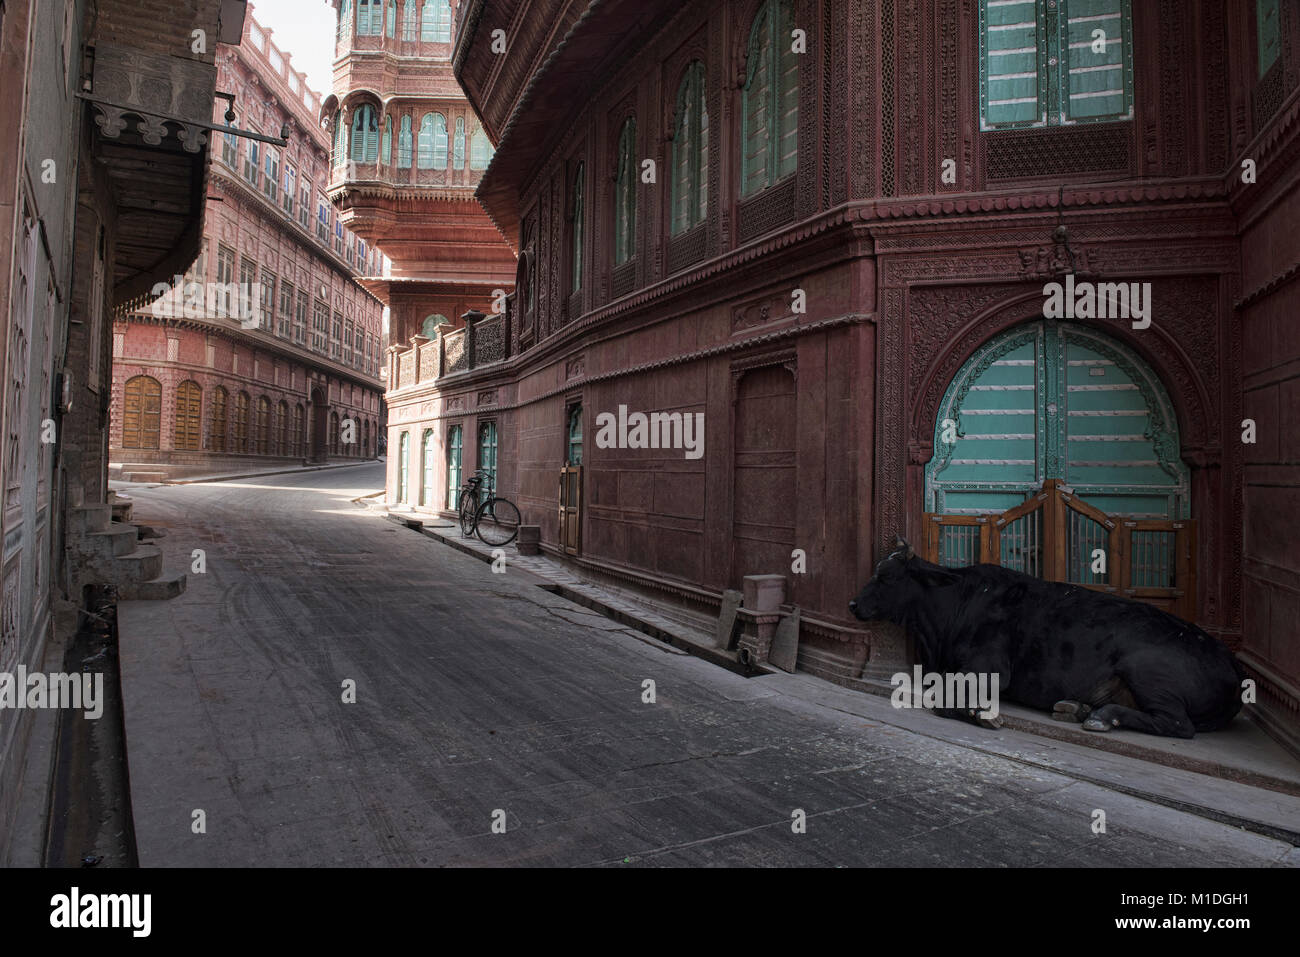 Cow in front of old haveli homes, Bikaner, Rajasthan, India - Stock Image